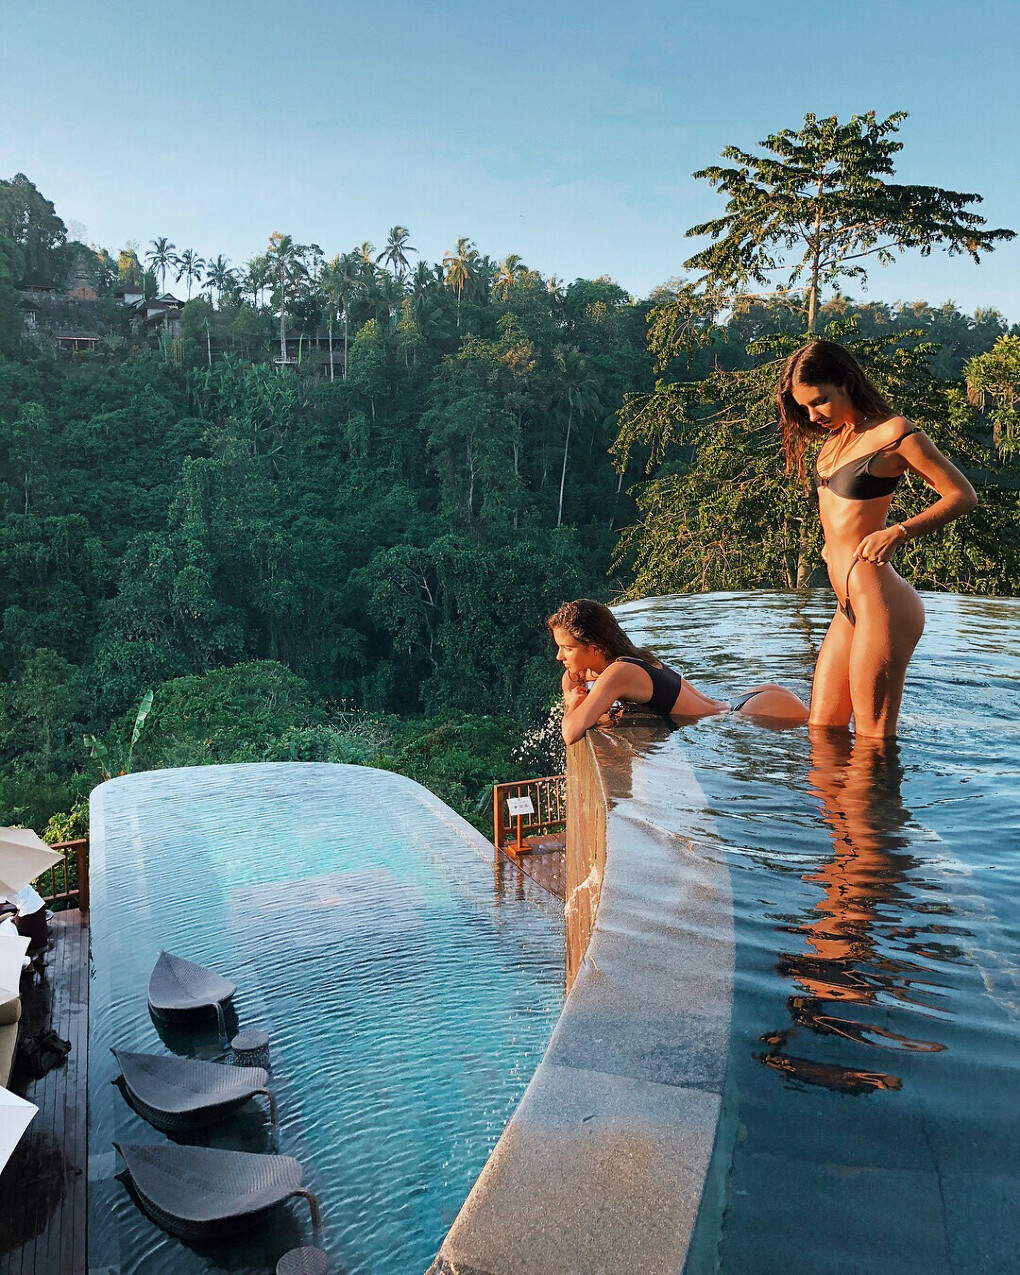 """Explore Bali With Bali Daily on Instagram: """"Tag your pool babe to join you for a relaxing dip in this amazing pool • The legendary Hanging Gardens of Babylon were built by…"""""""